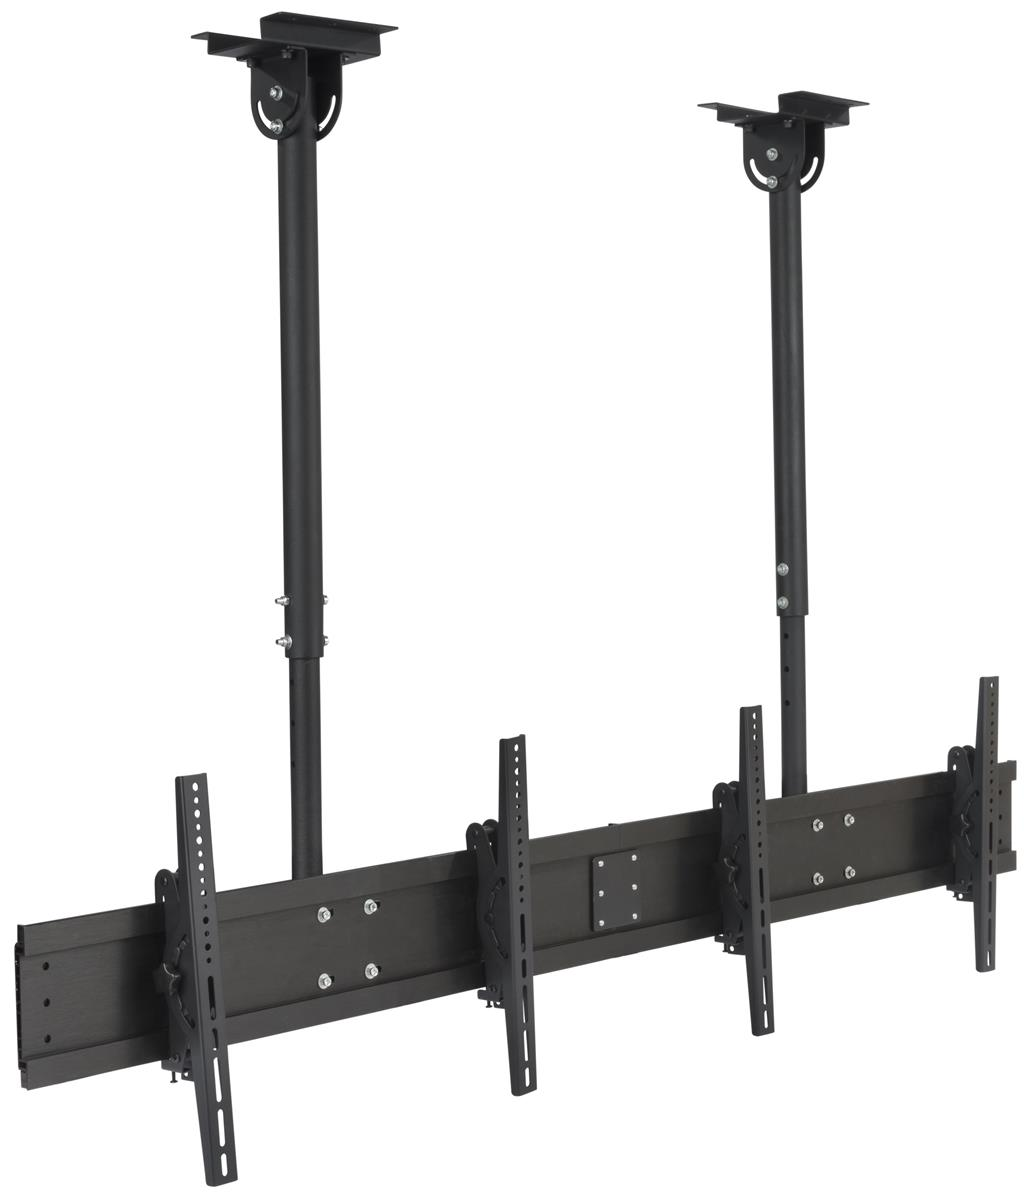 suspended ceiling tv mount adjustable length. Black Bedroom Furniture Sets. Home Design Ideas